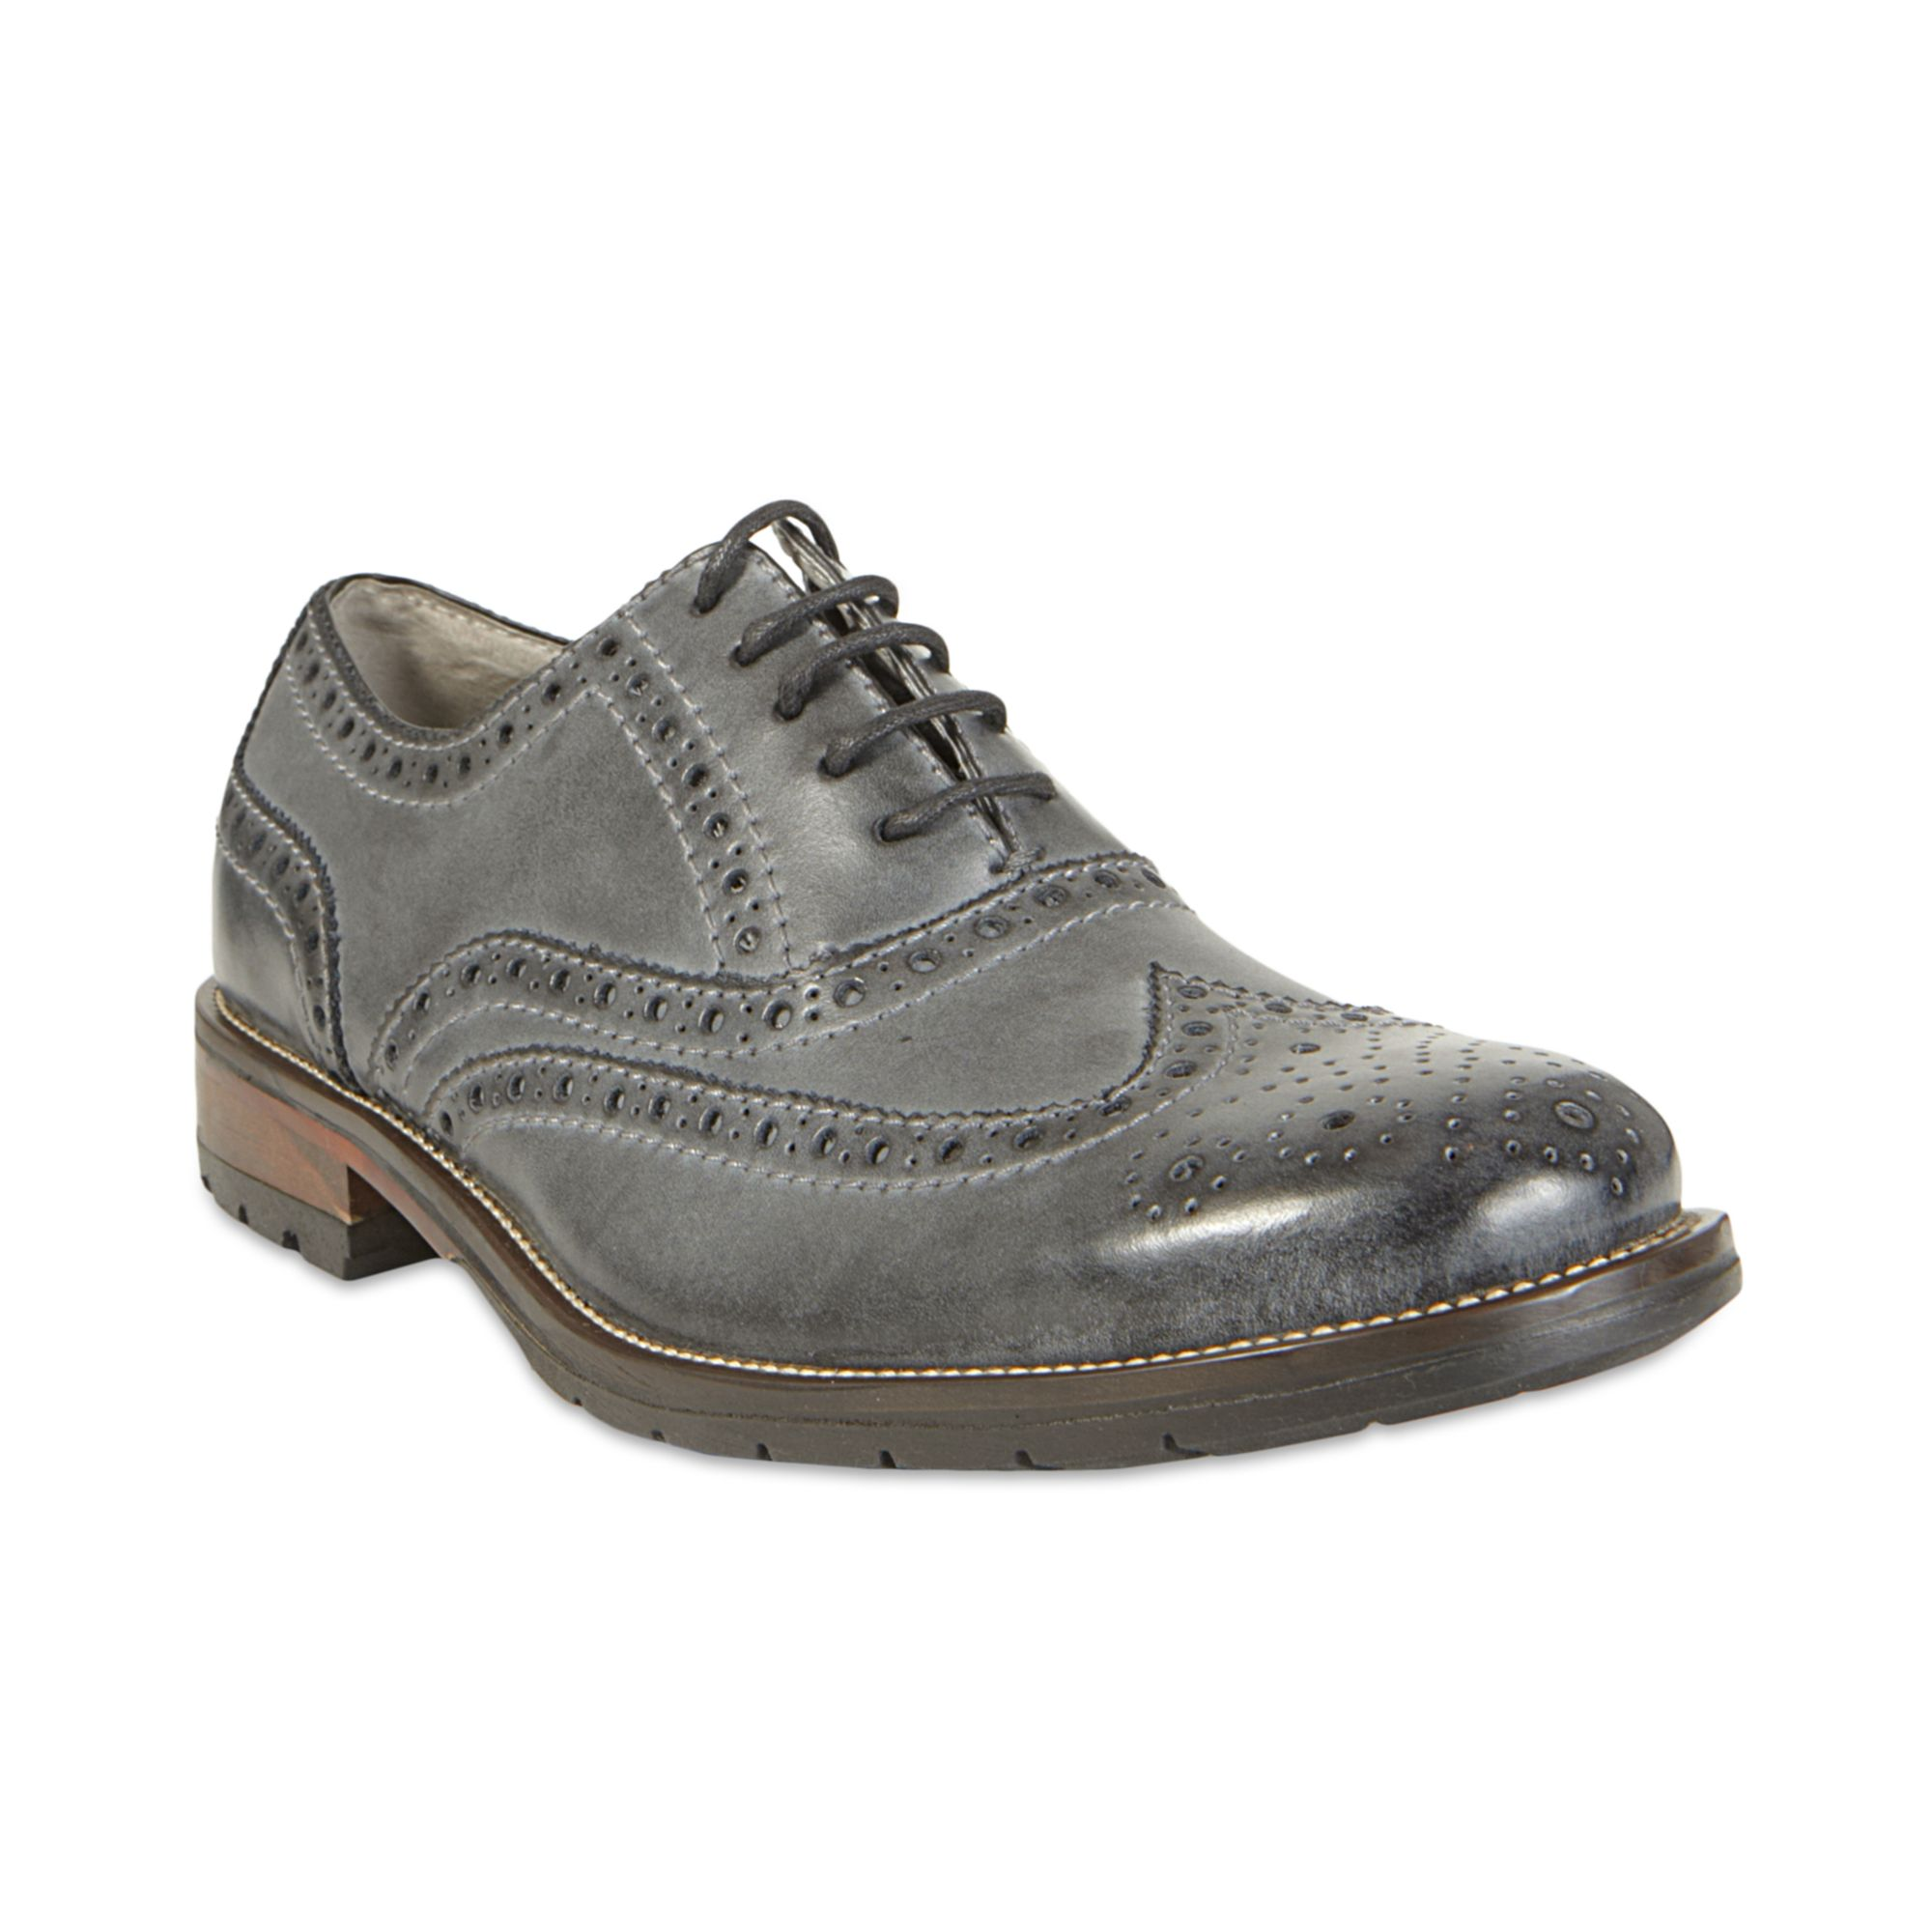 Oxfords The collection of FRYE men's classic wingtip shoes and oxfords is crafted from the highest-quality leathers available. For longevity and style that gets better with age, shop now.